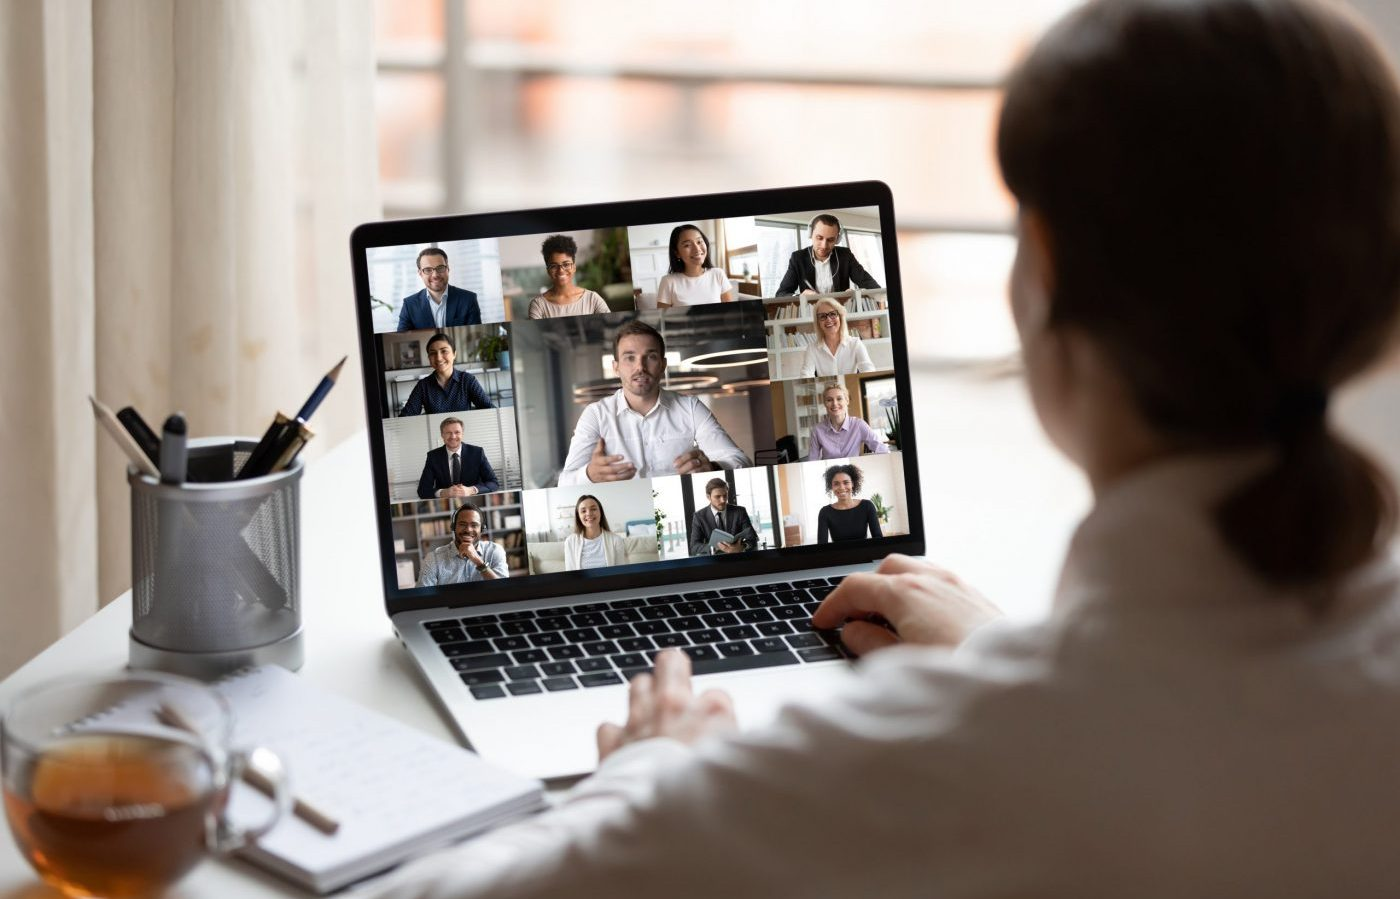 View over young woman's shoulder seated at desk looking at computer screen where there is a collage of many diverse people involved at video conference meeting